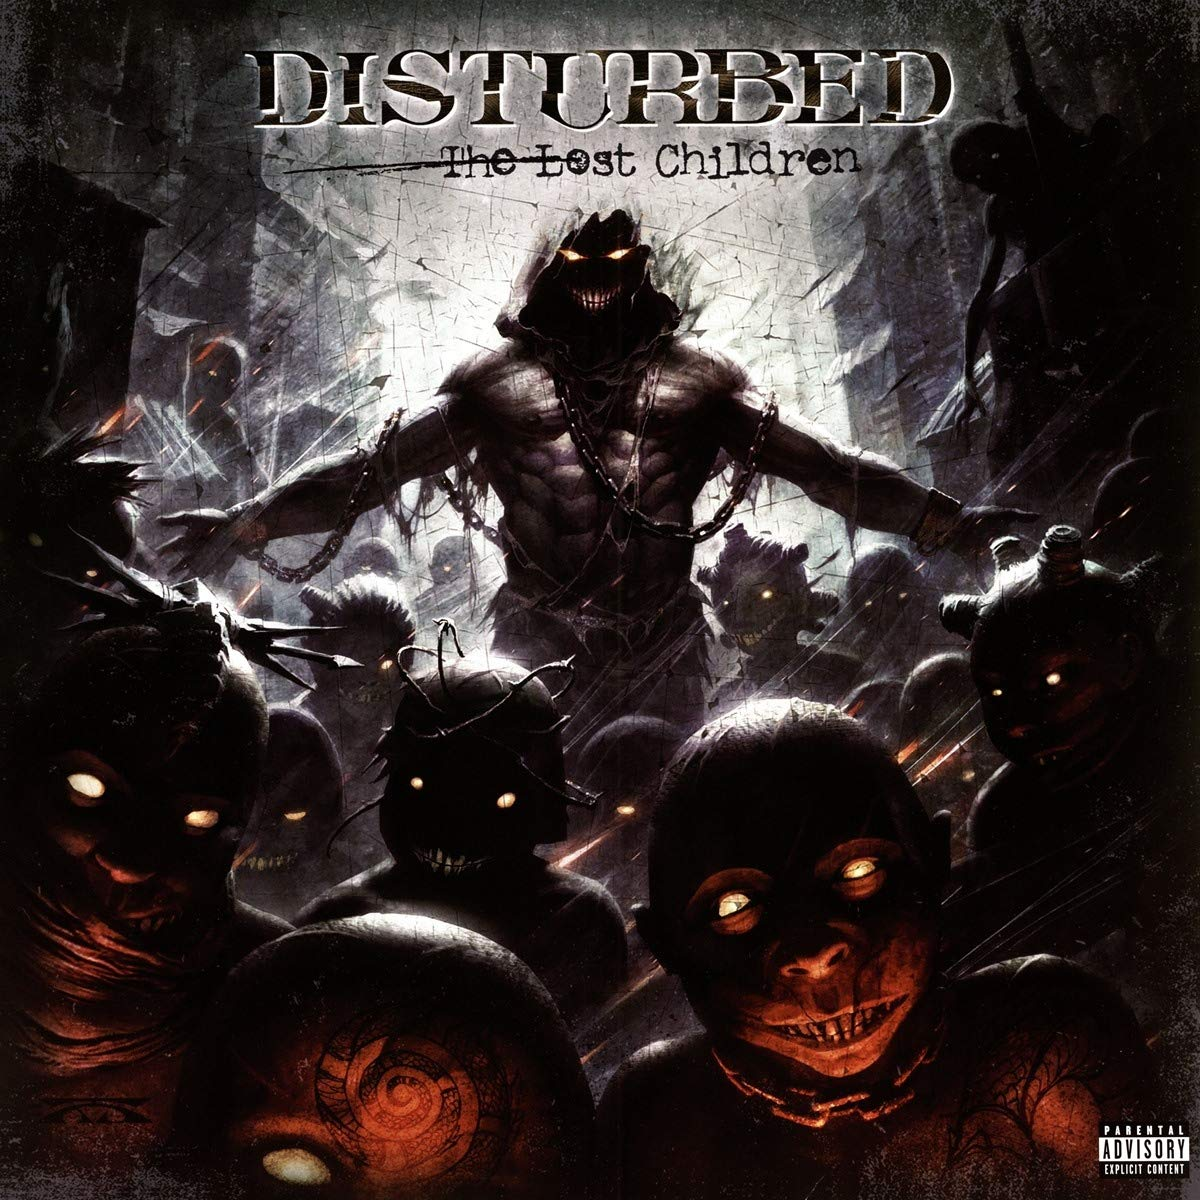 Disturbed - 'The Lost Children' 2LP 2018 RSD